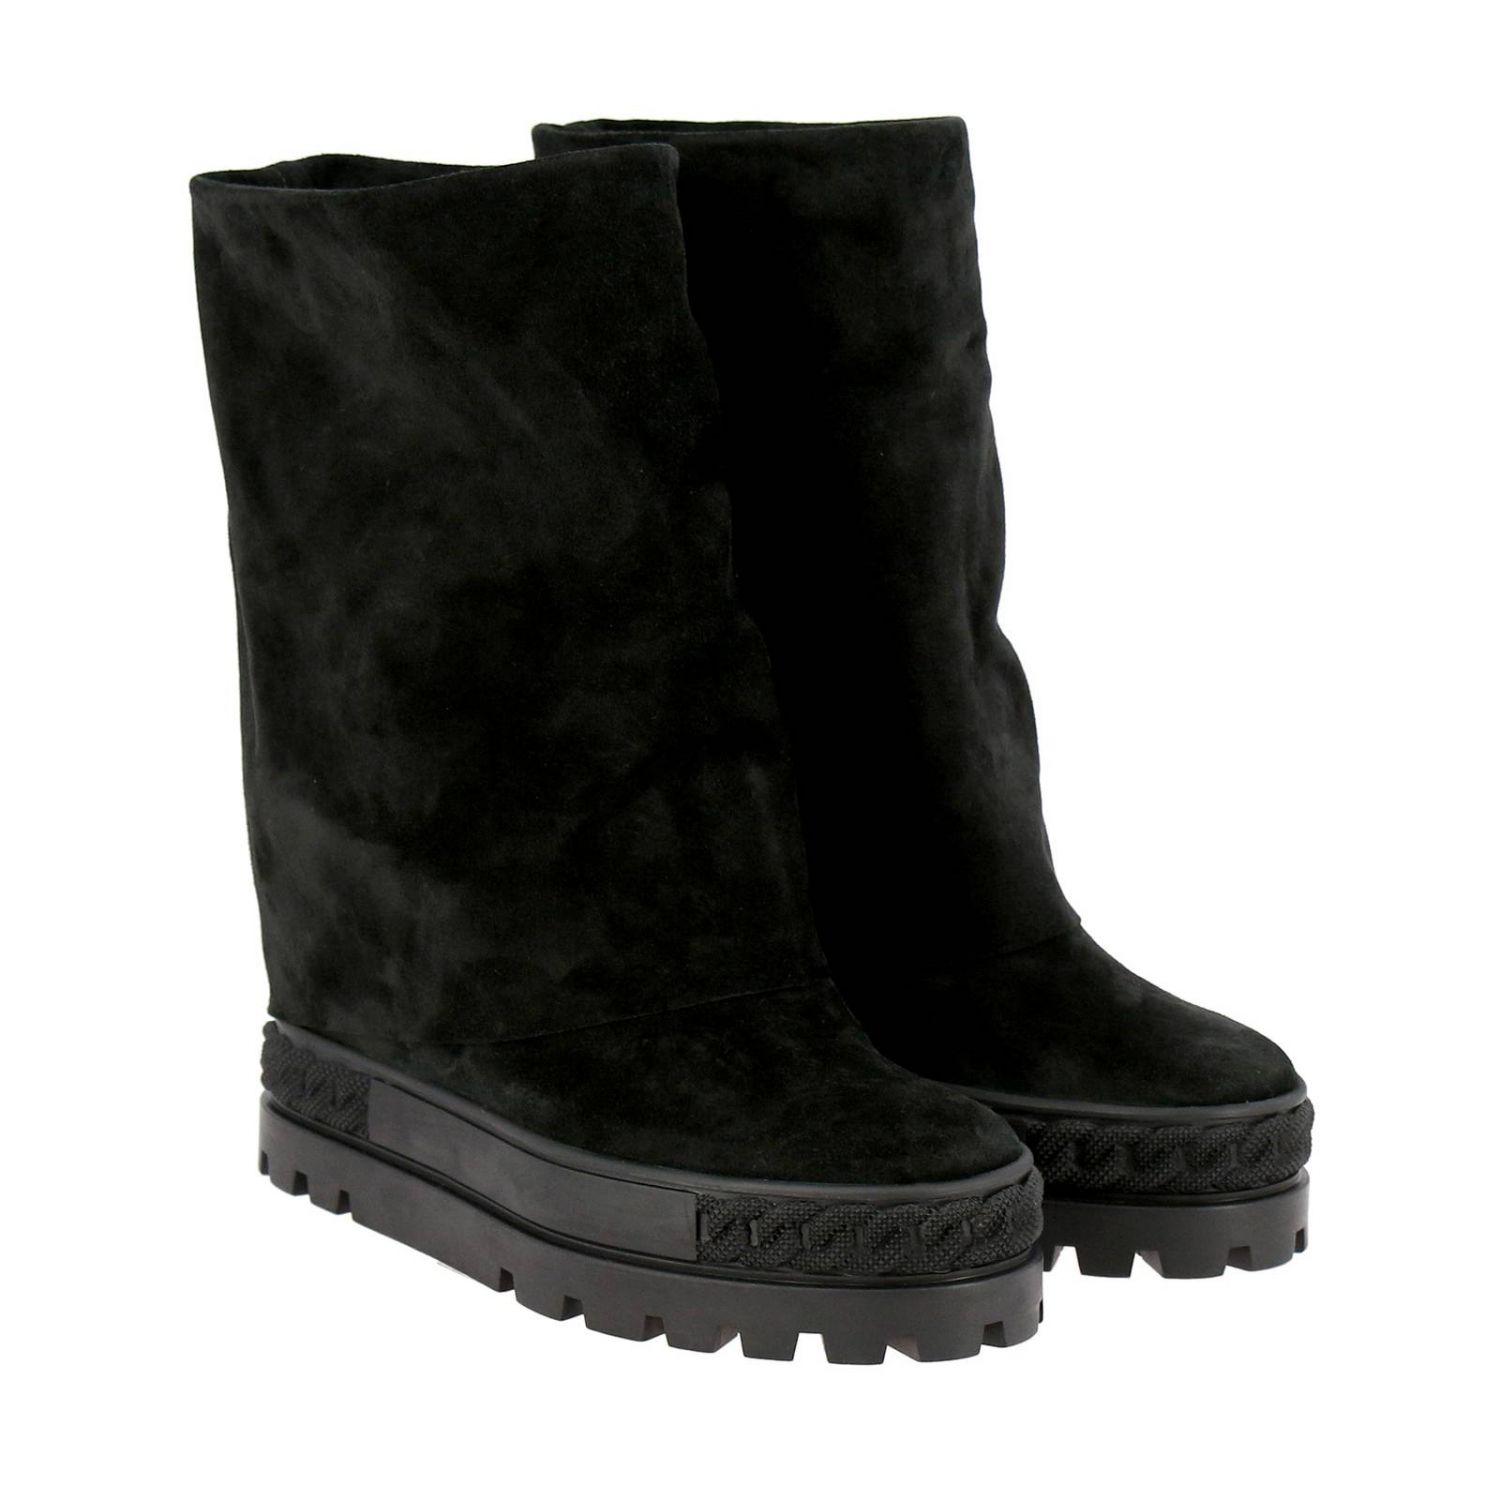 Renna Casadei double face sneaker boots in suede black 2